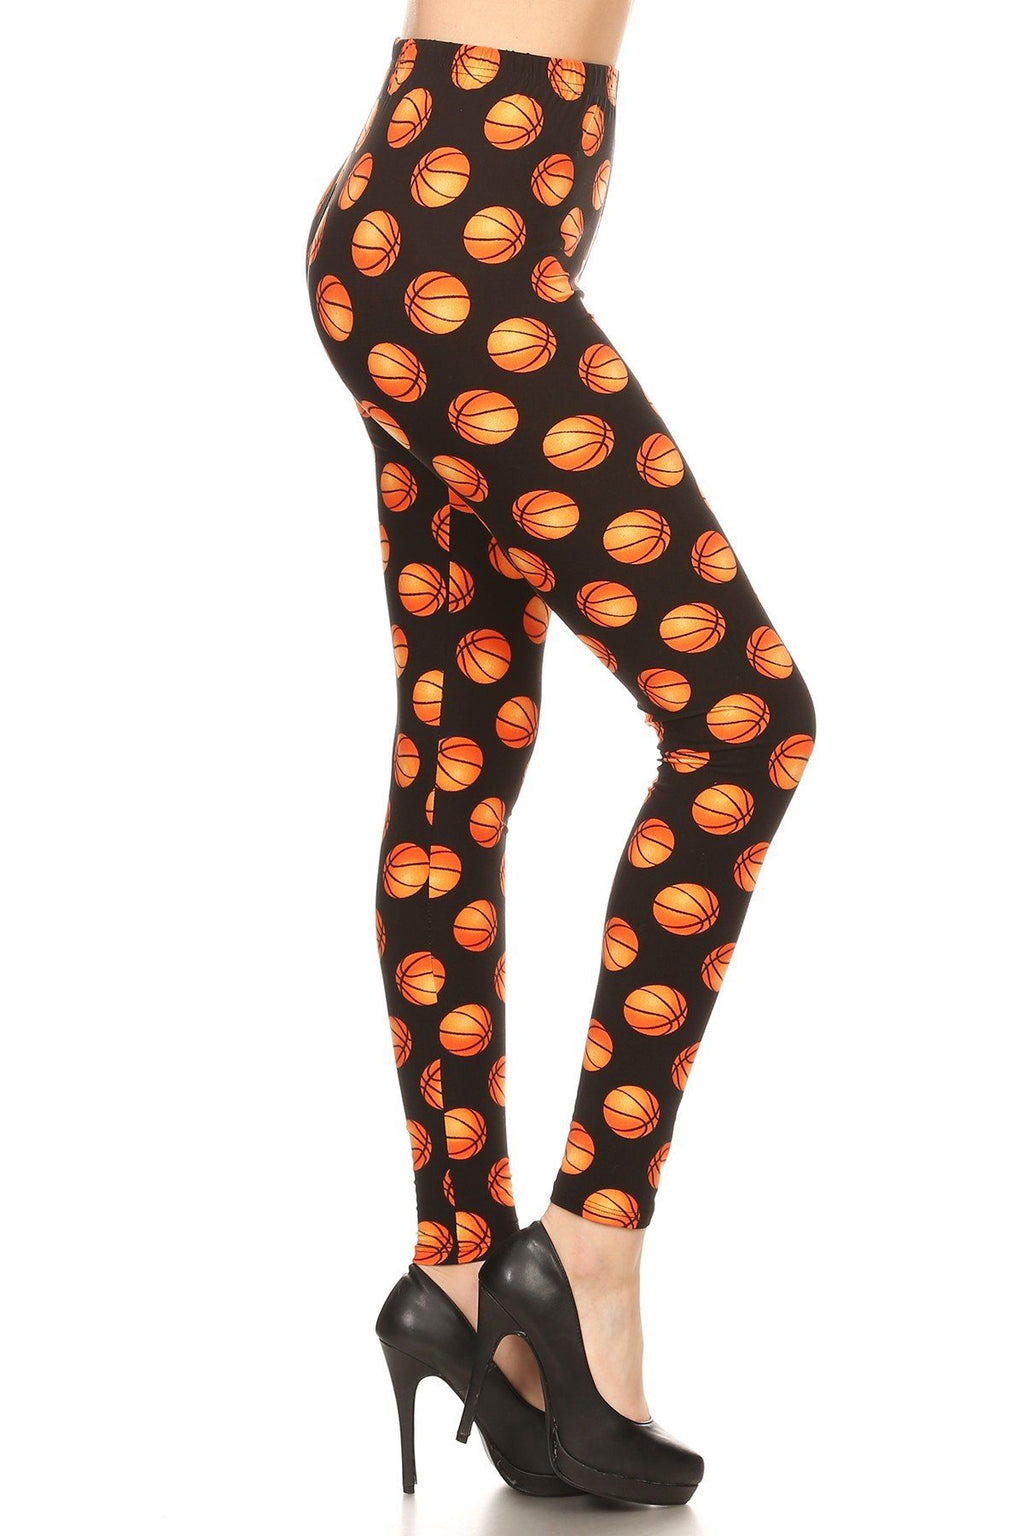 Women's Basketball Printed Leggings Orange: OS and Plus - MomMe and More Matching Mommy and Me Clothing